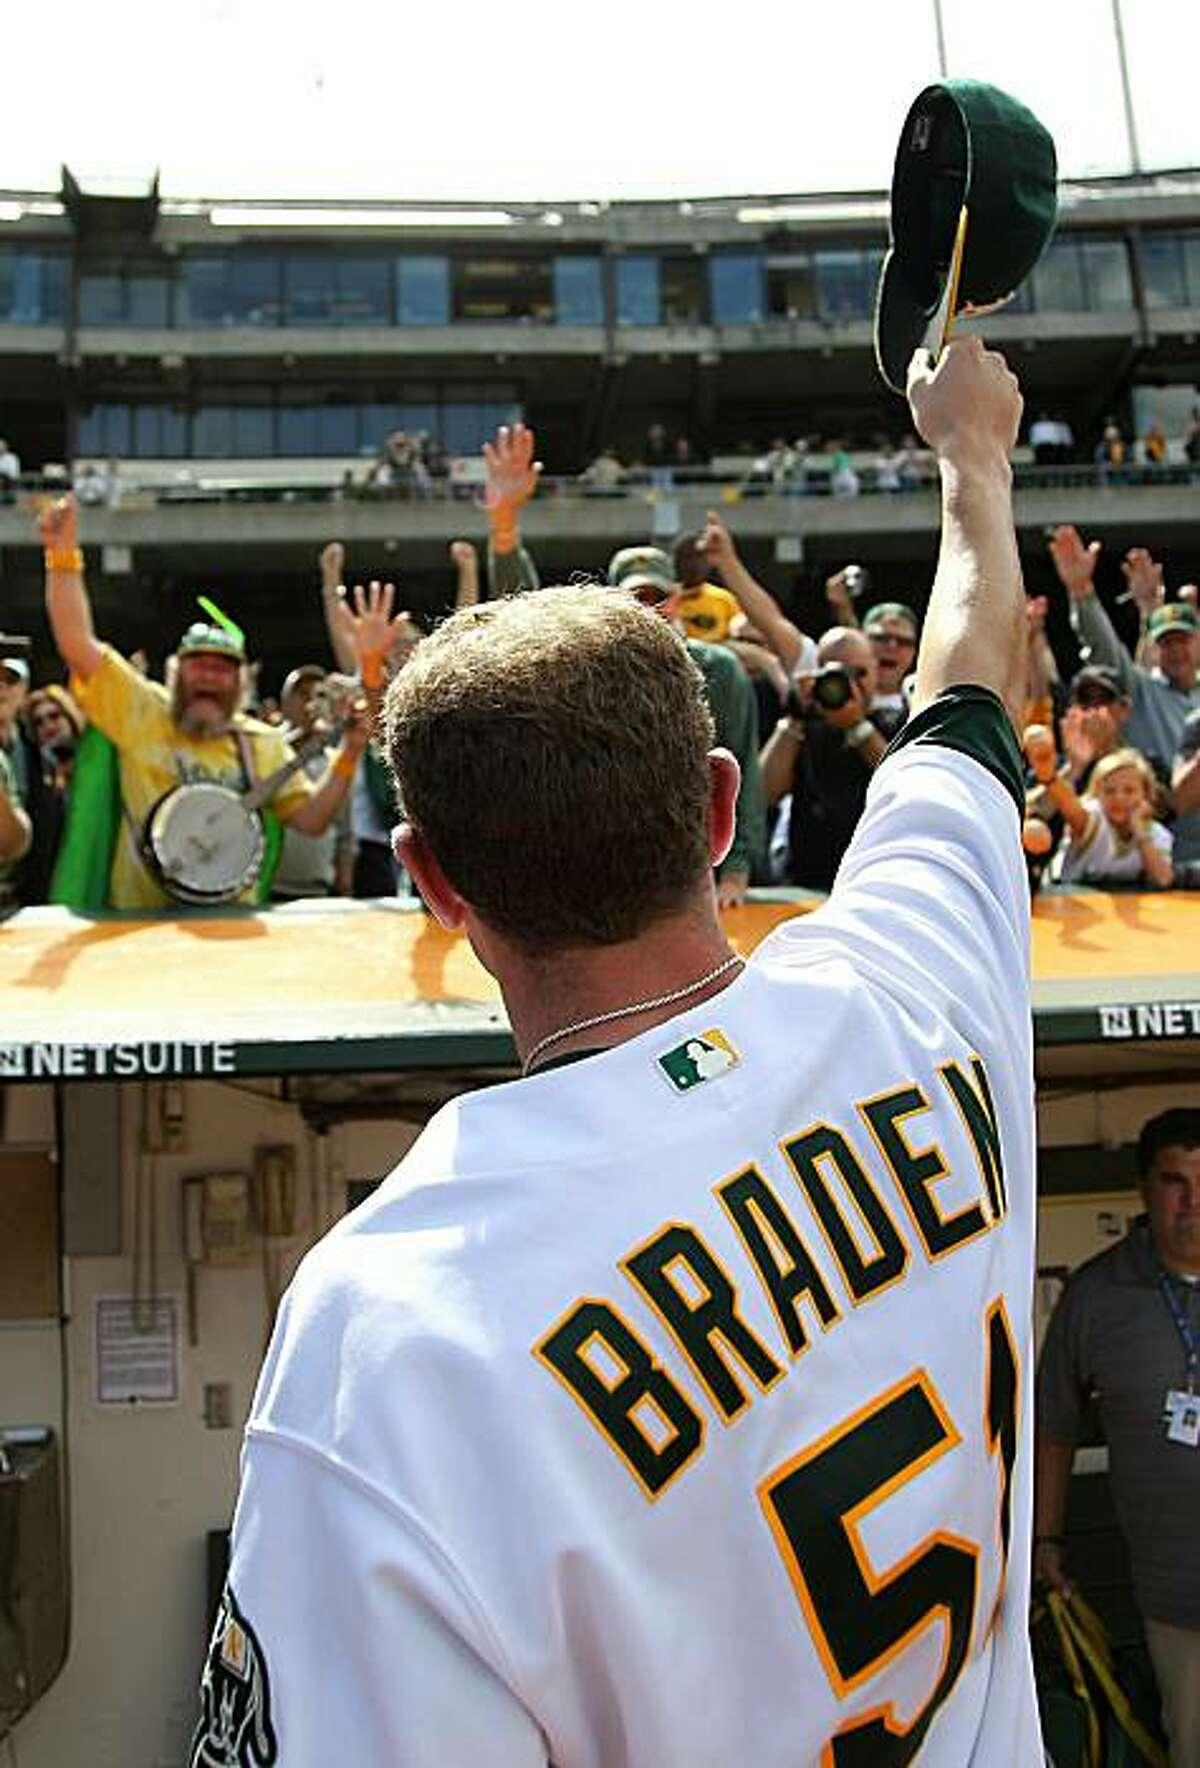 Dallas Braden celebrates after pitching a perfect game against the Tampa Bay Rays on Sunday in Oakland.